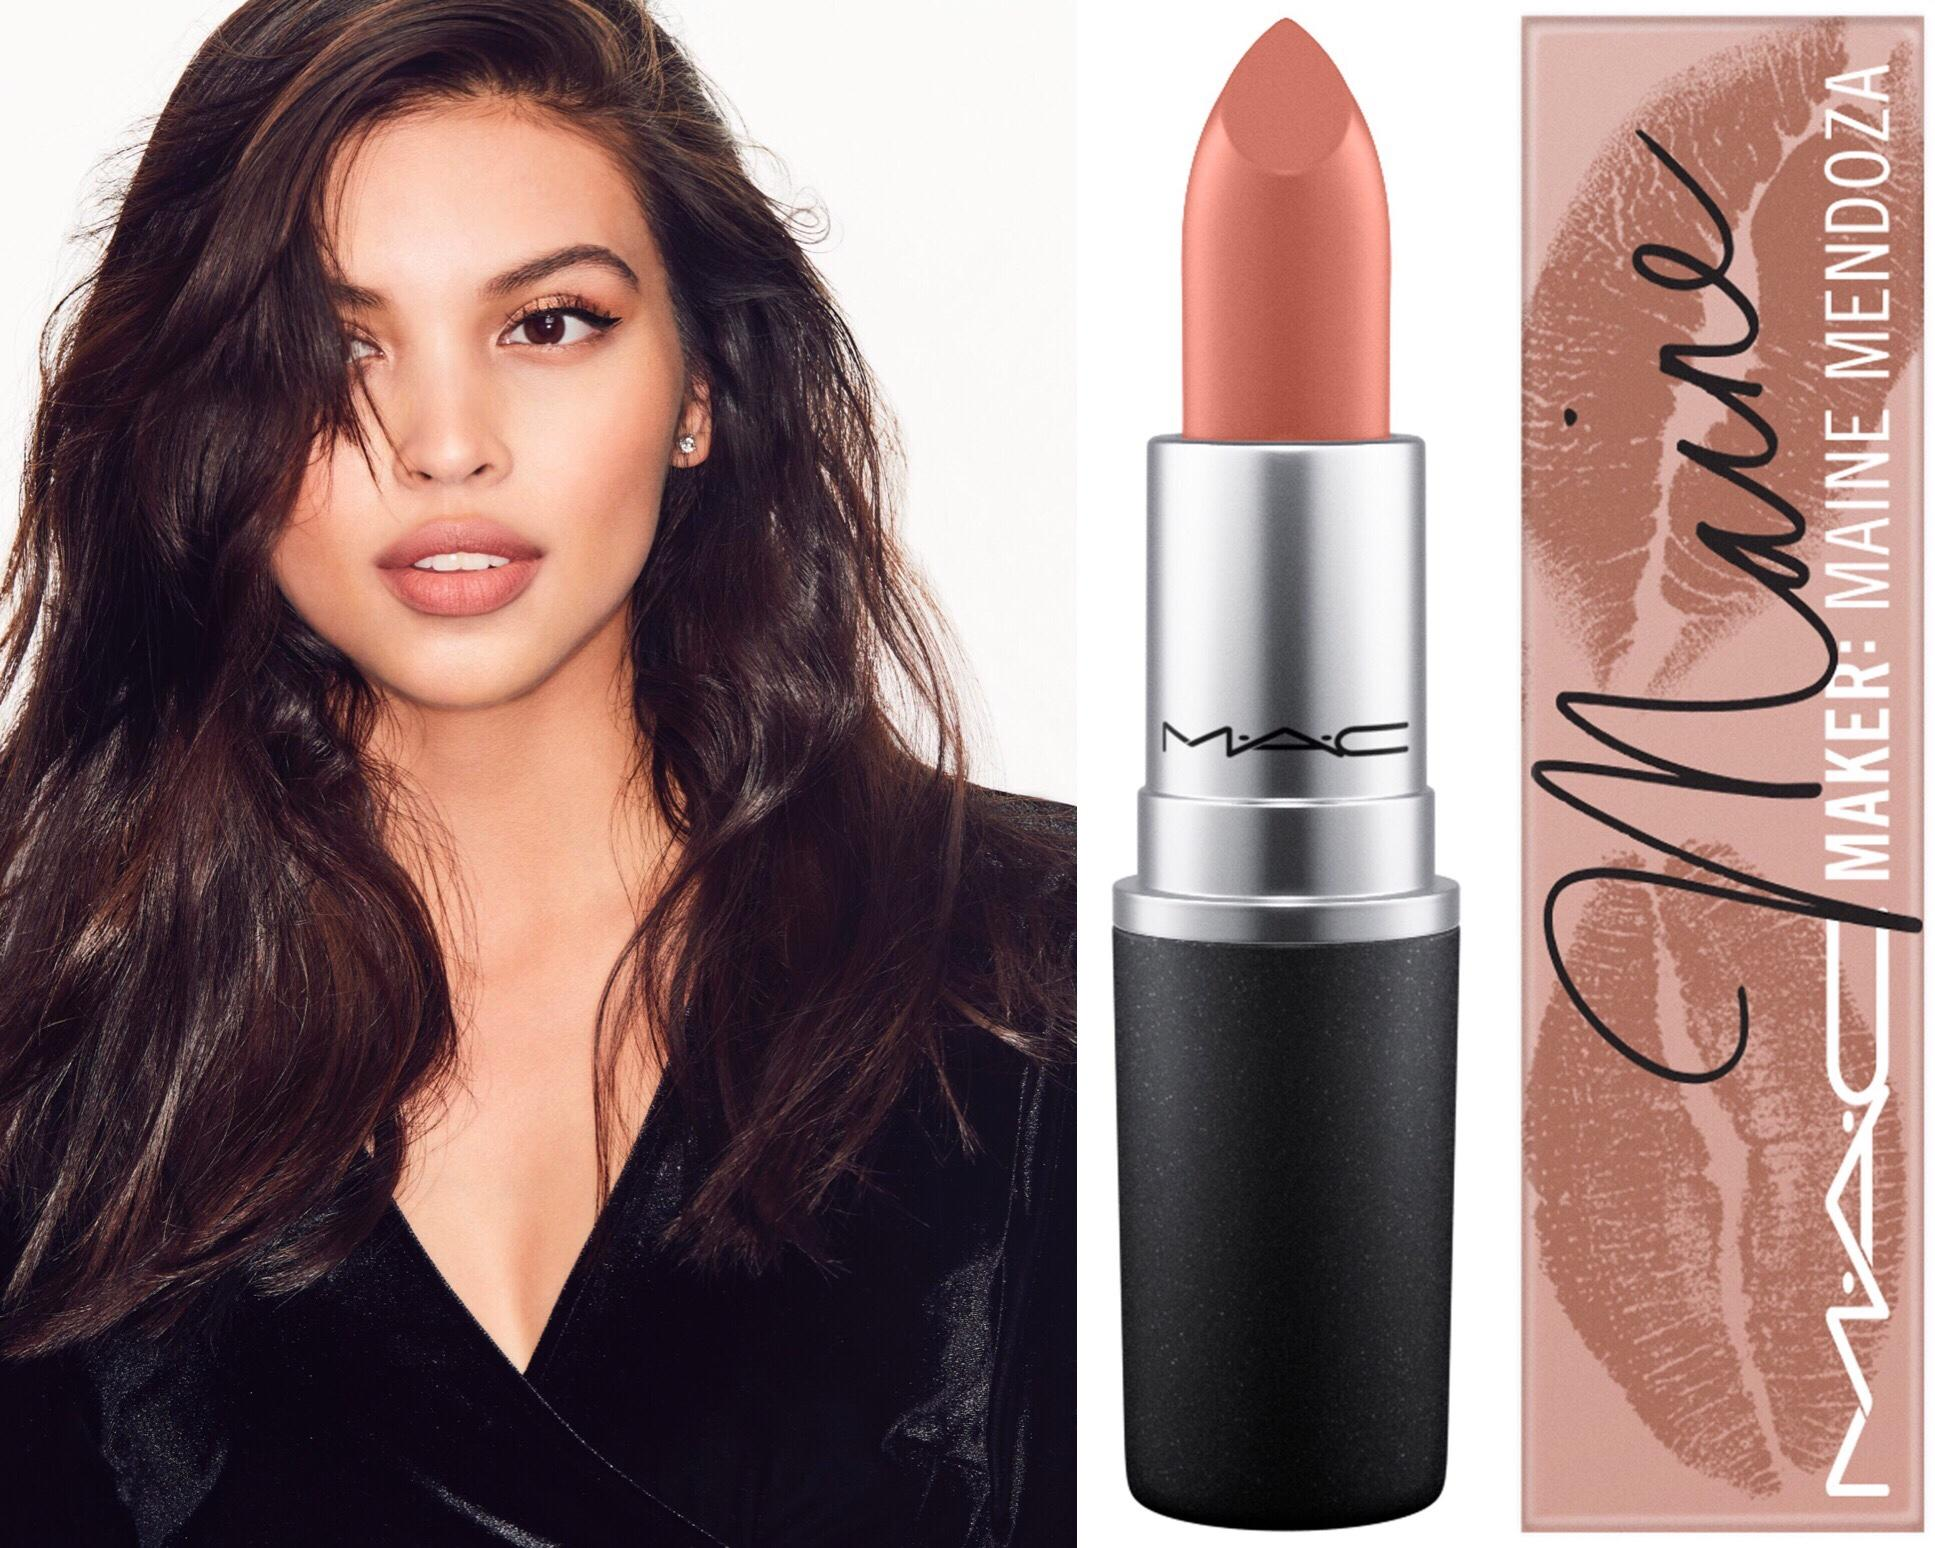 Bonbon Shop M.a.c Maine Mendoza Lipstick By Bonbons Shop.